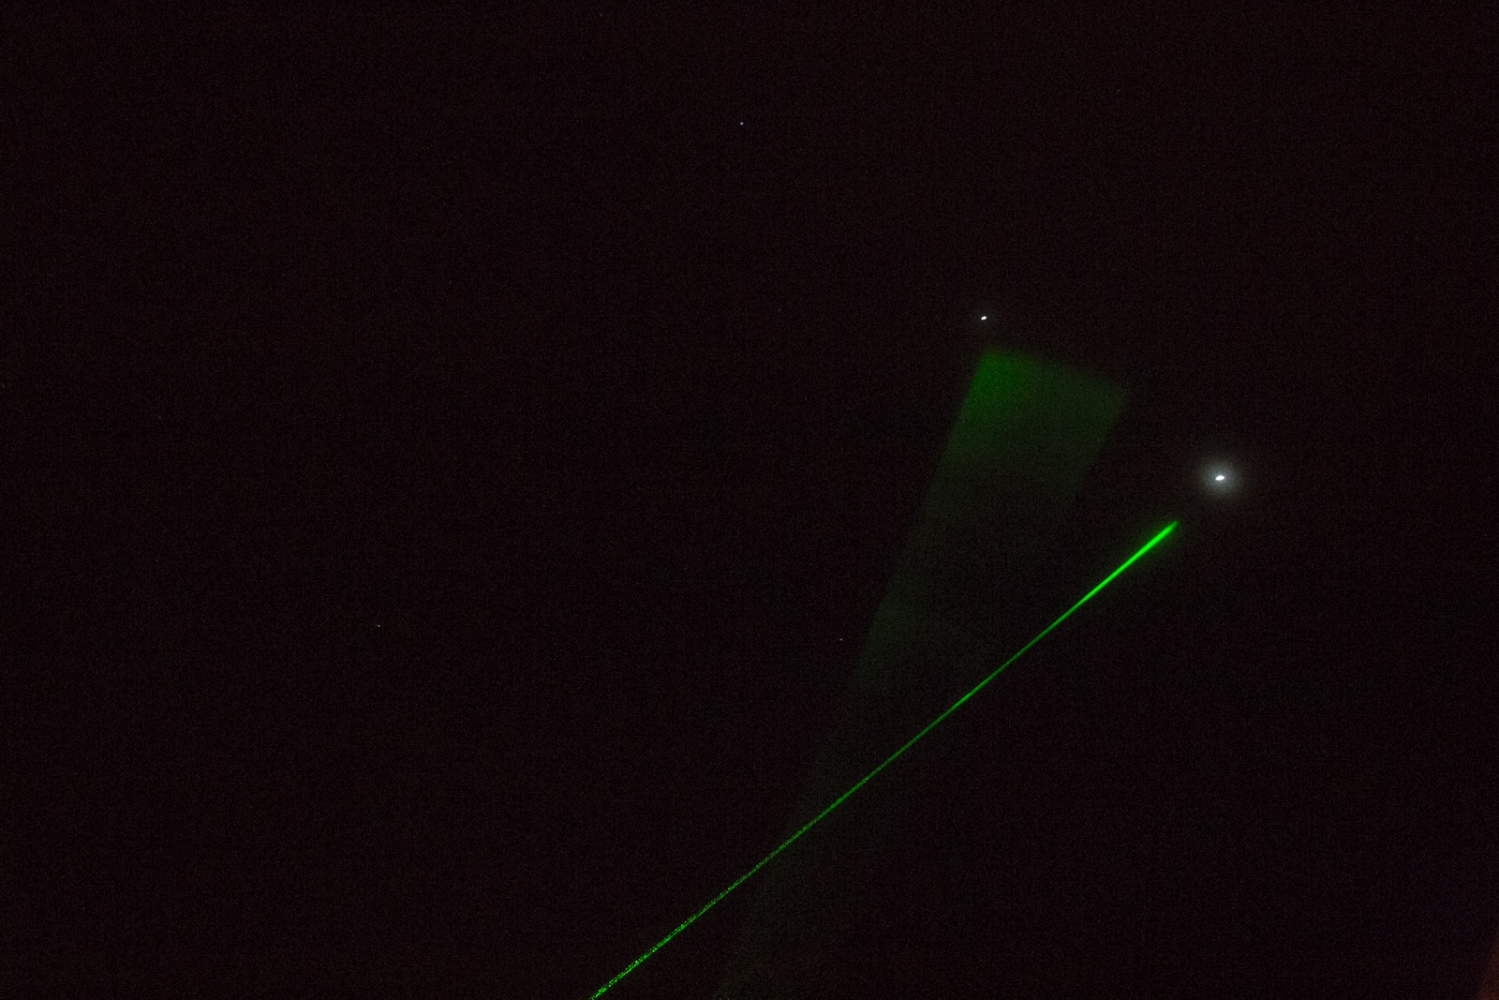 Guides from an observatory on volcano Mauna Kea use lasers to point at the stars and help visitors visualize them. Hawaii, Big Island.